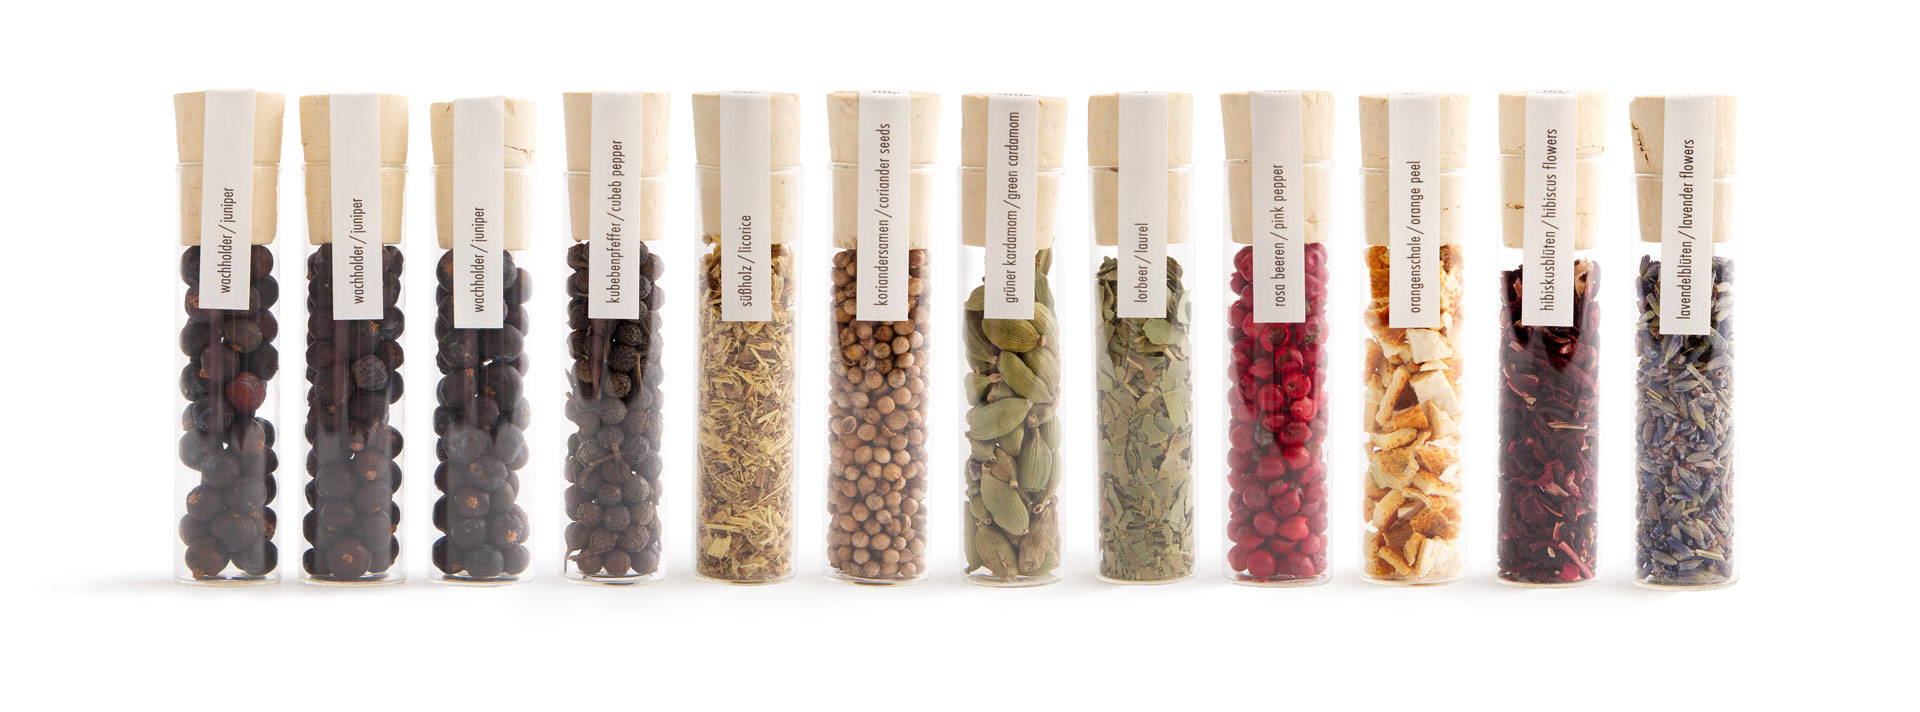 Botanicals for gin infusion